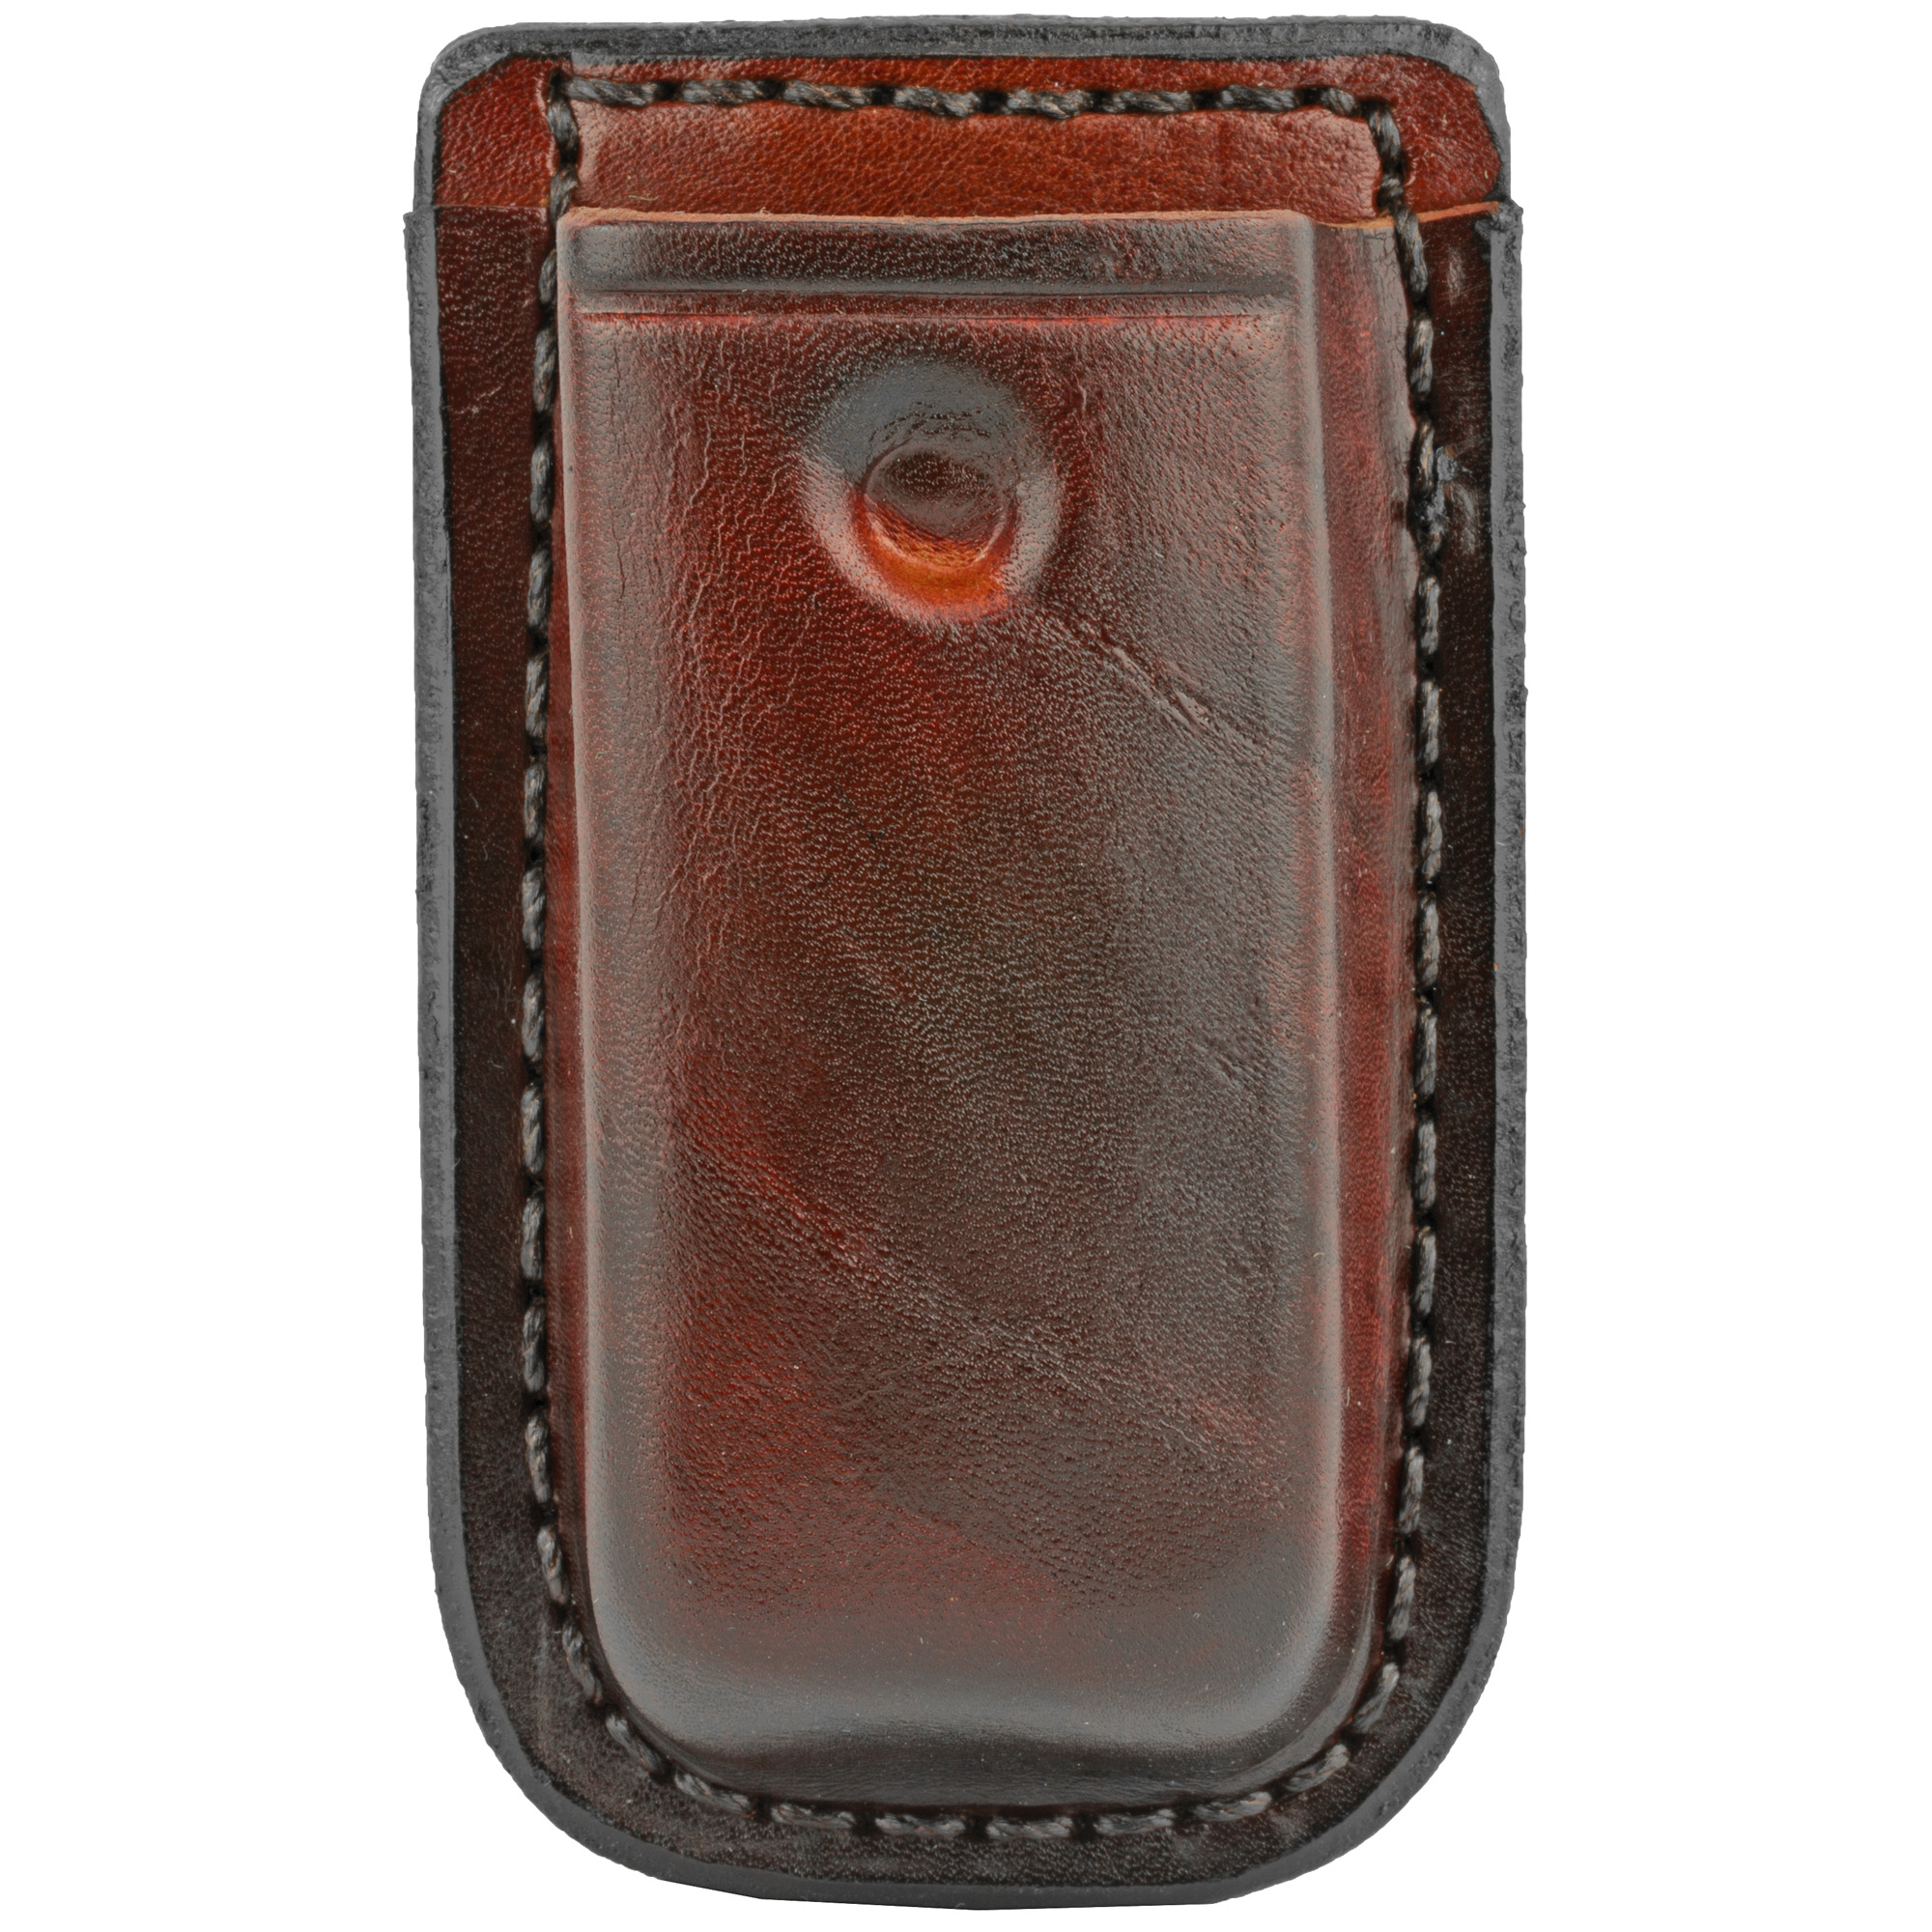 """The D417 clip on single magazine holder features a sturdy spring metal clip for easy removal. The indent on the front holds the magazine in place. Carrier has an ambidextrous design and fits belts up to 1 3/4""""."""